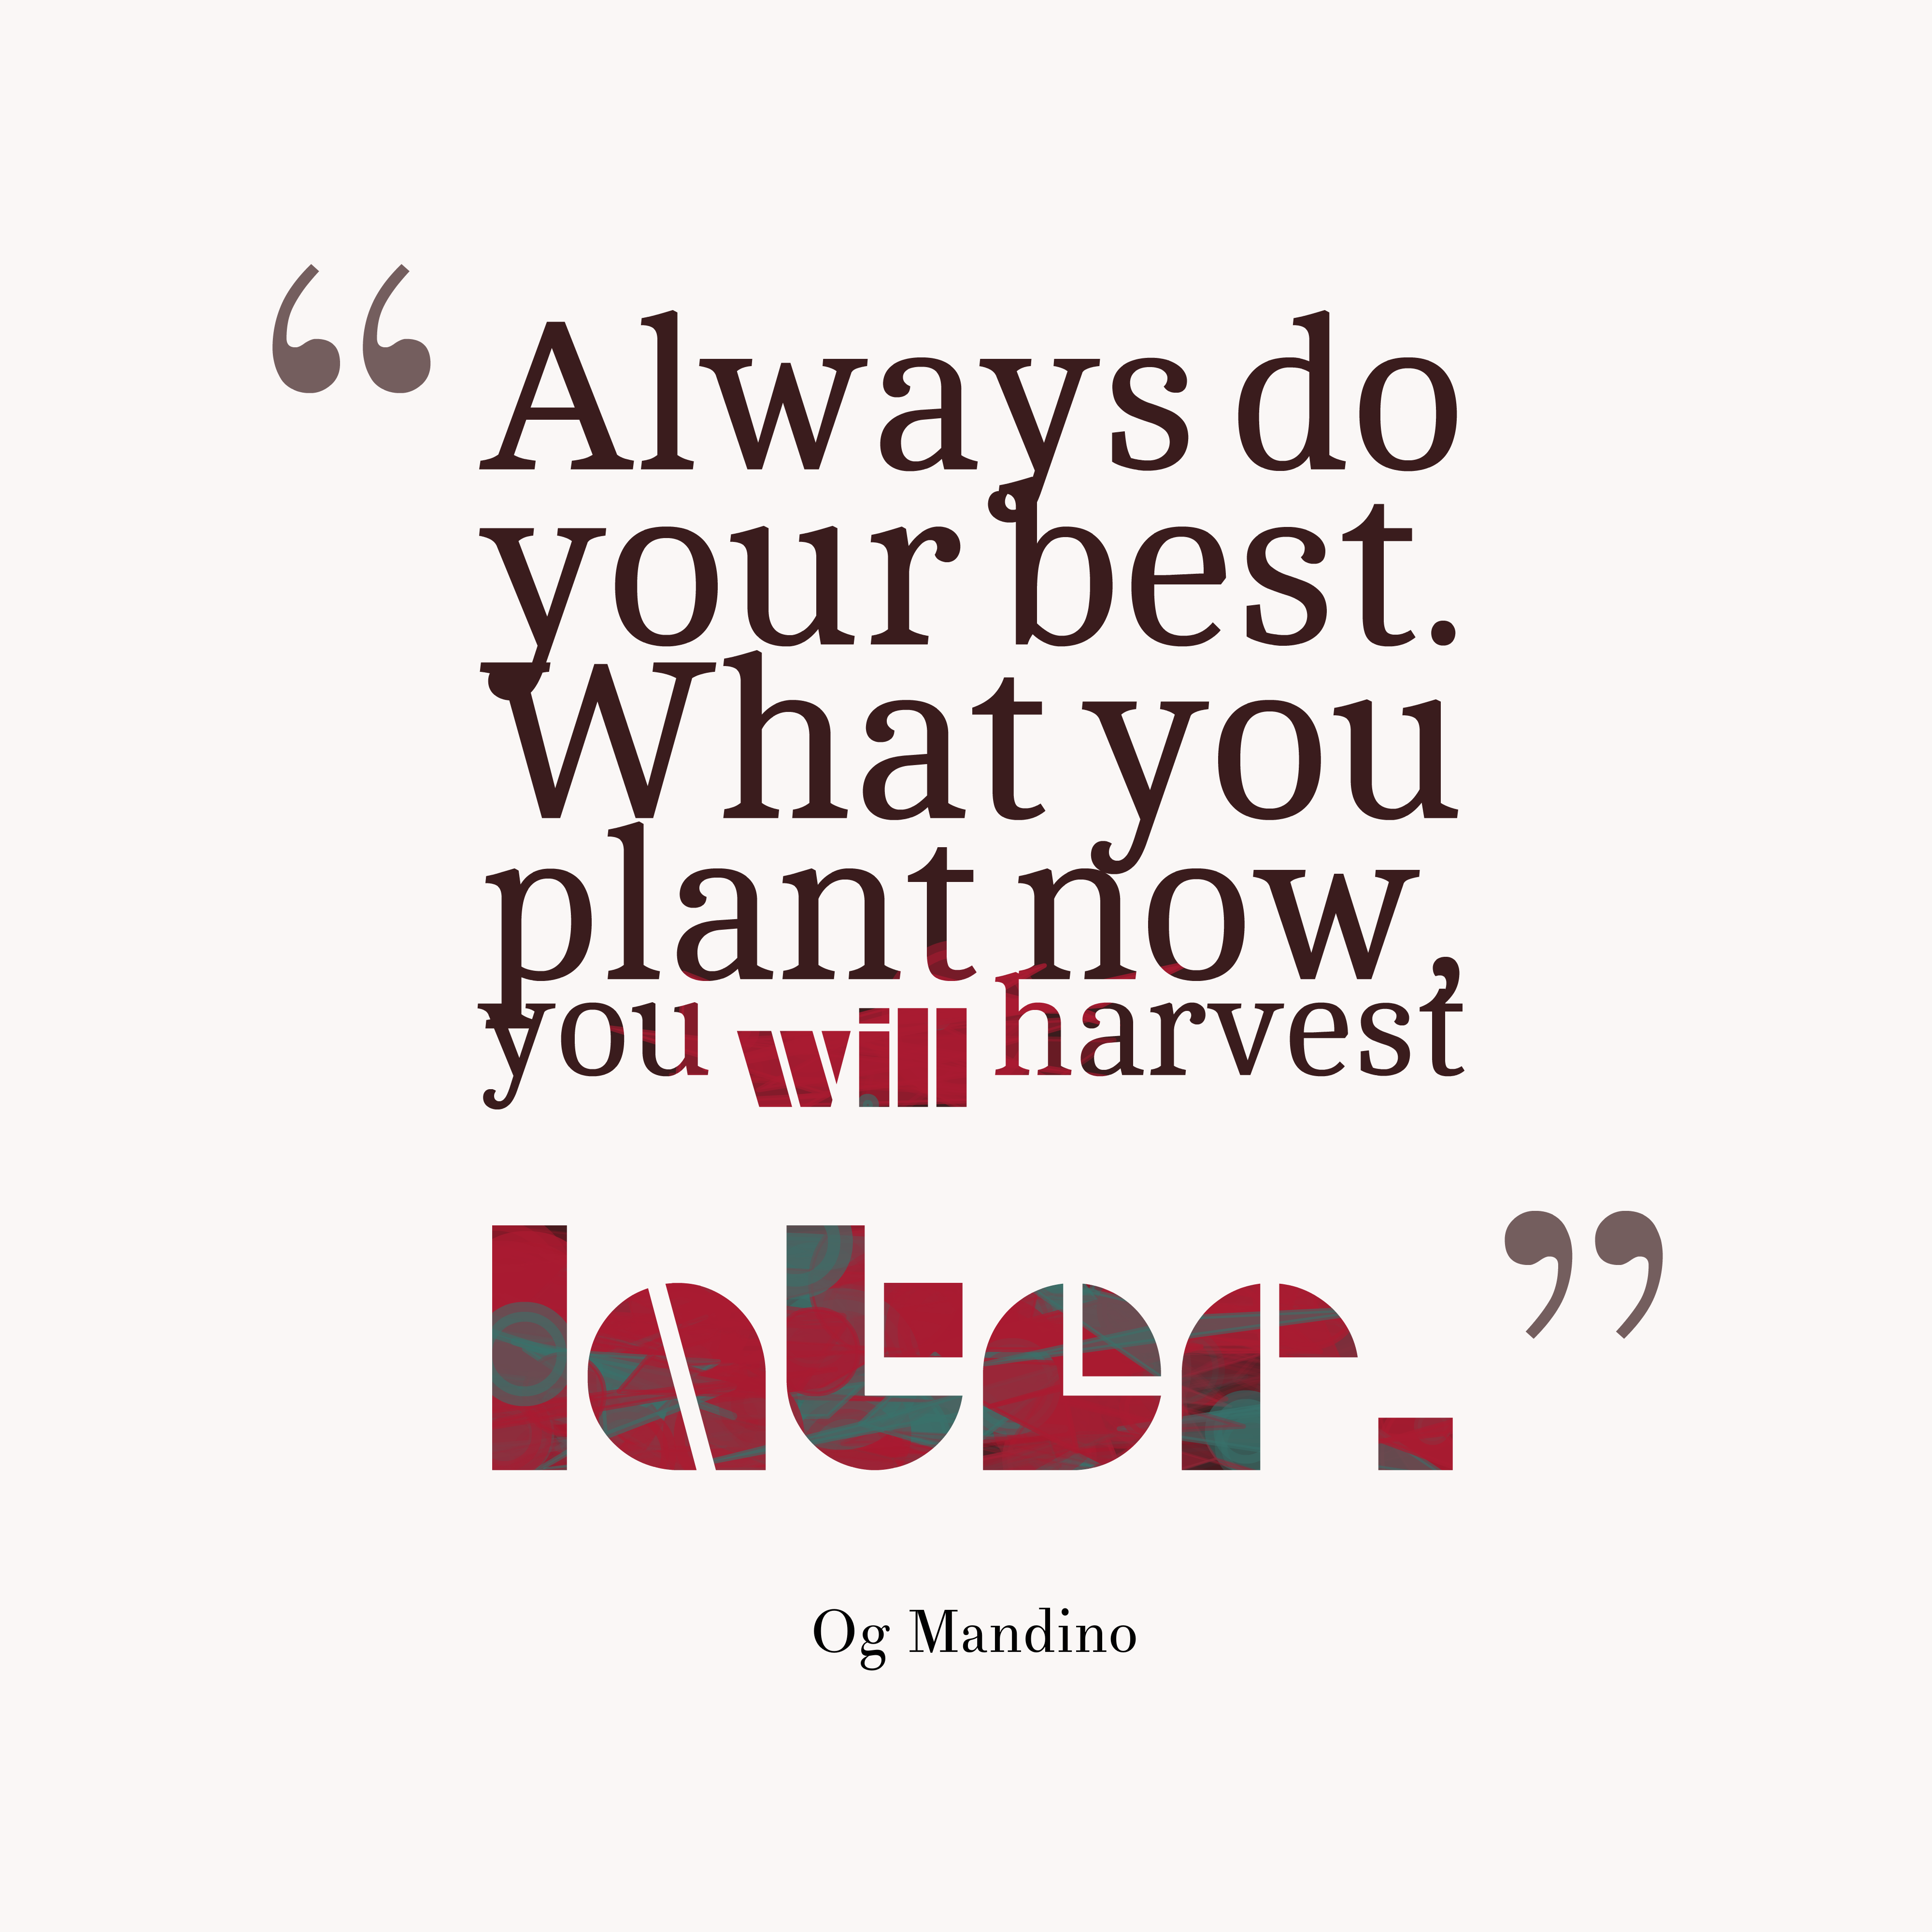 hi-res image of Always do your best. What you plant now, you w%23ill ...